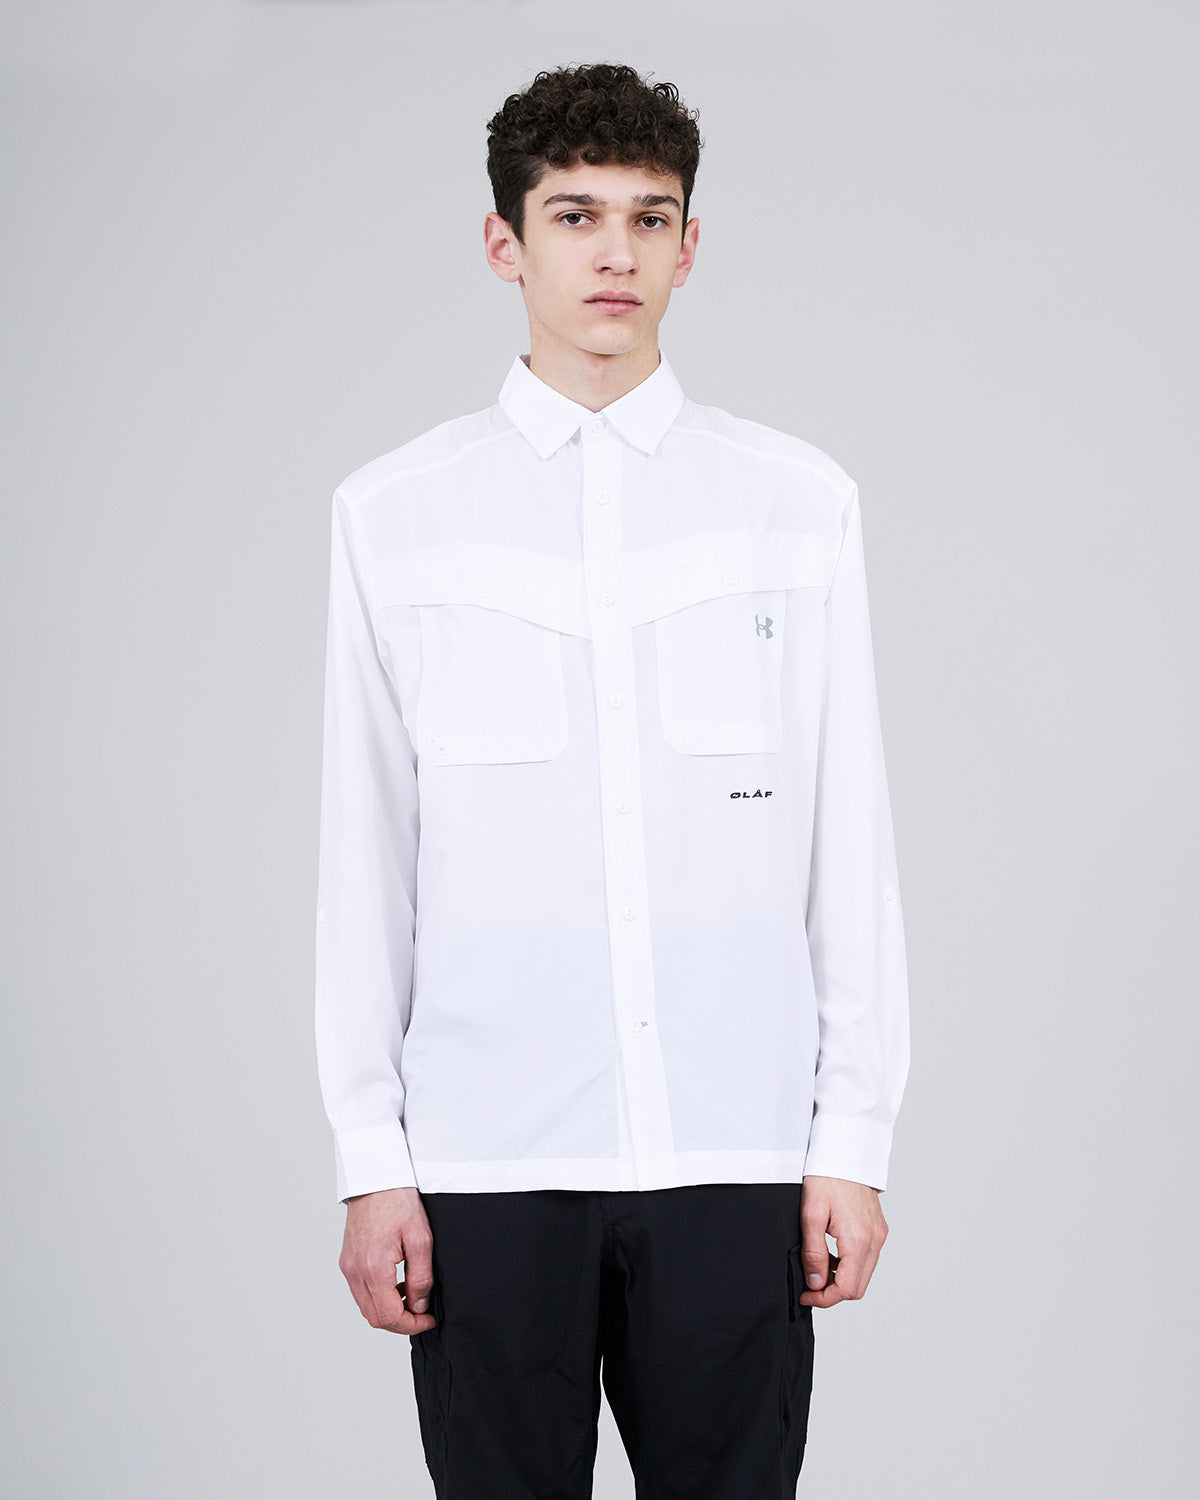 ØLÅF x UA Shirt White, 100% PES fabric, Two chest pockets, Embroidery on left chest, Mesh fabric under armpit for improved ventilation, Made in Jordan